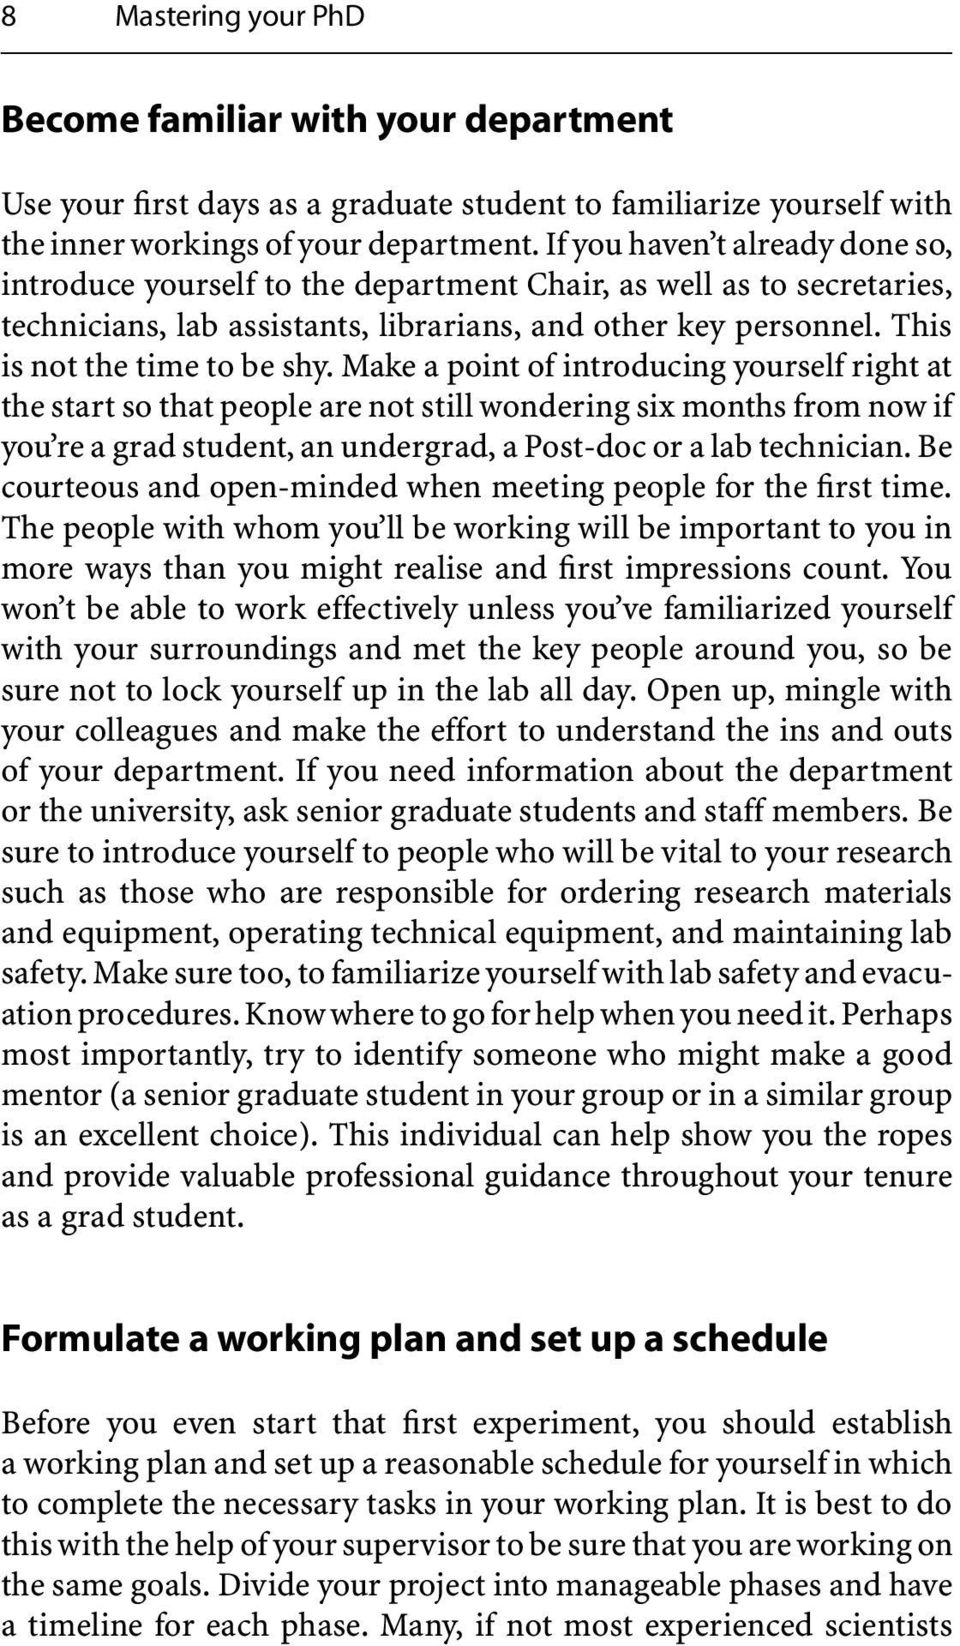 Make a point of introducing yourself right at the start so that people are not still wondering six months from now if you re a grad student, an undergrad, a Post-doc or a lab technician.